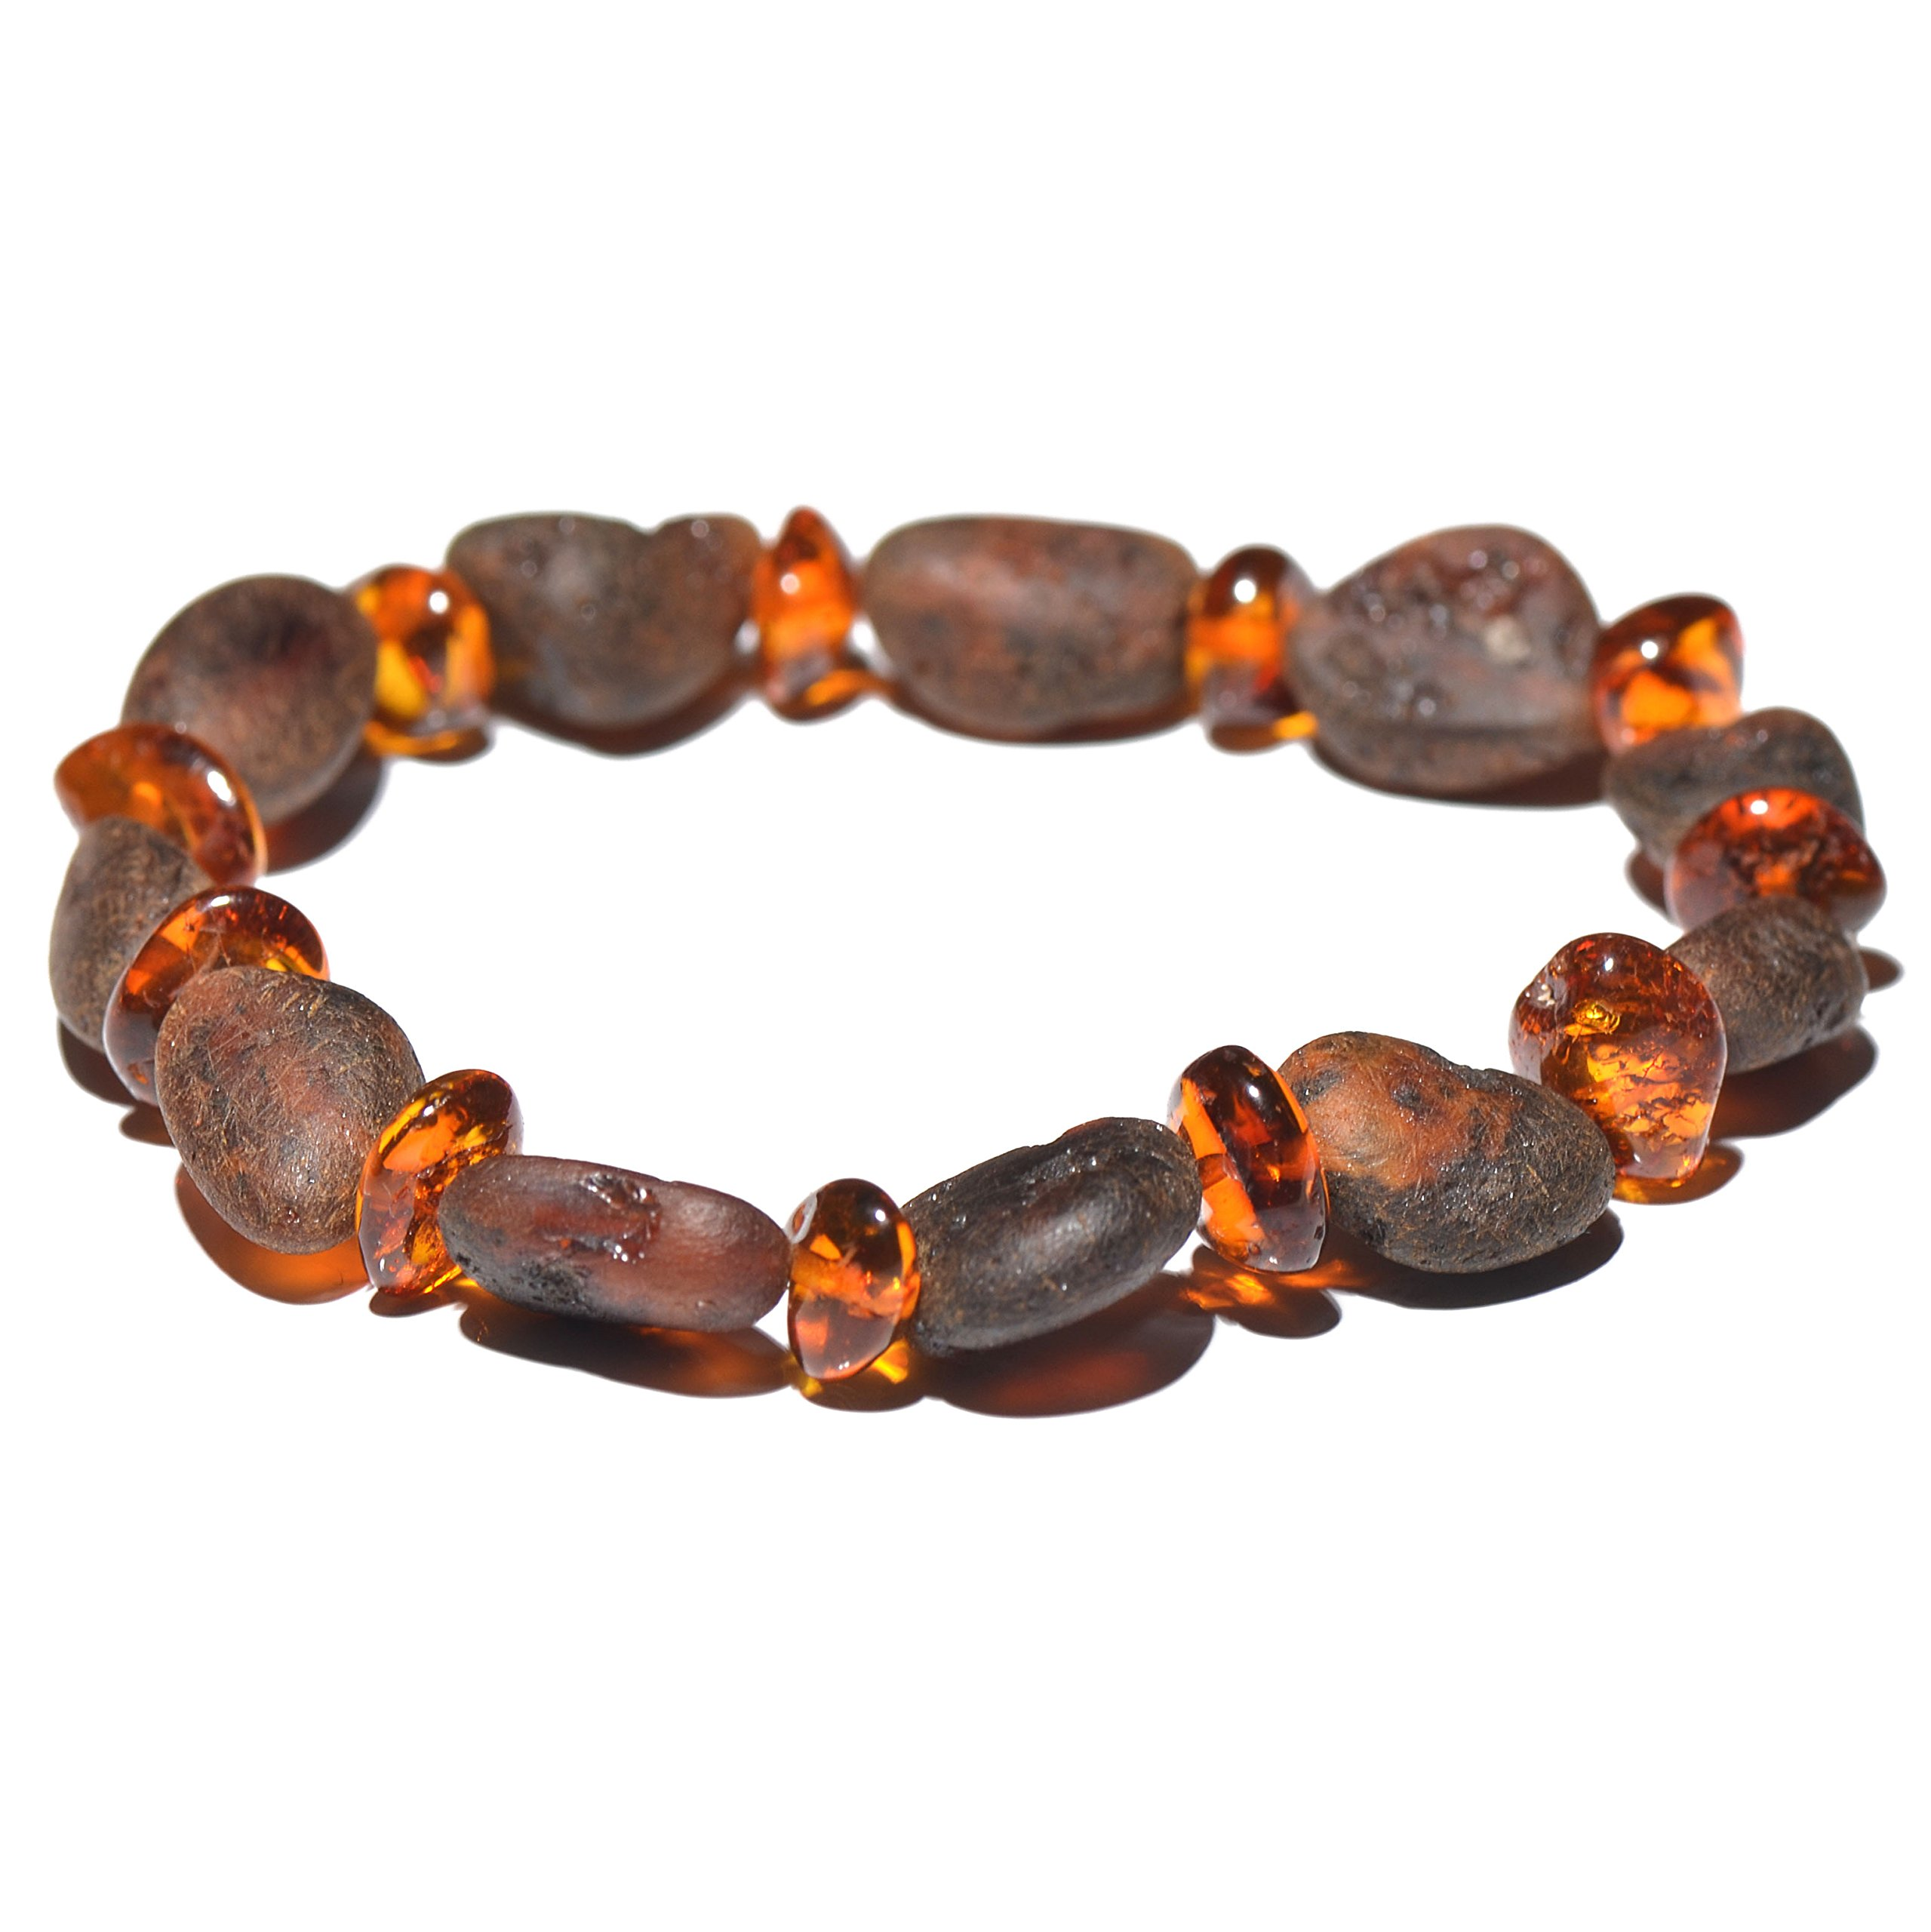 Genuine Raw Baltic Amber Bracelet for Adult - Choose your colors and choose your size! - 3 sizes and 10 different colors - 100% Authentic Baltic Amber (7 inches, Cognac mix)